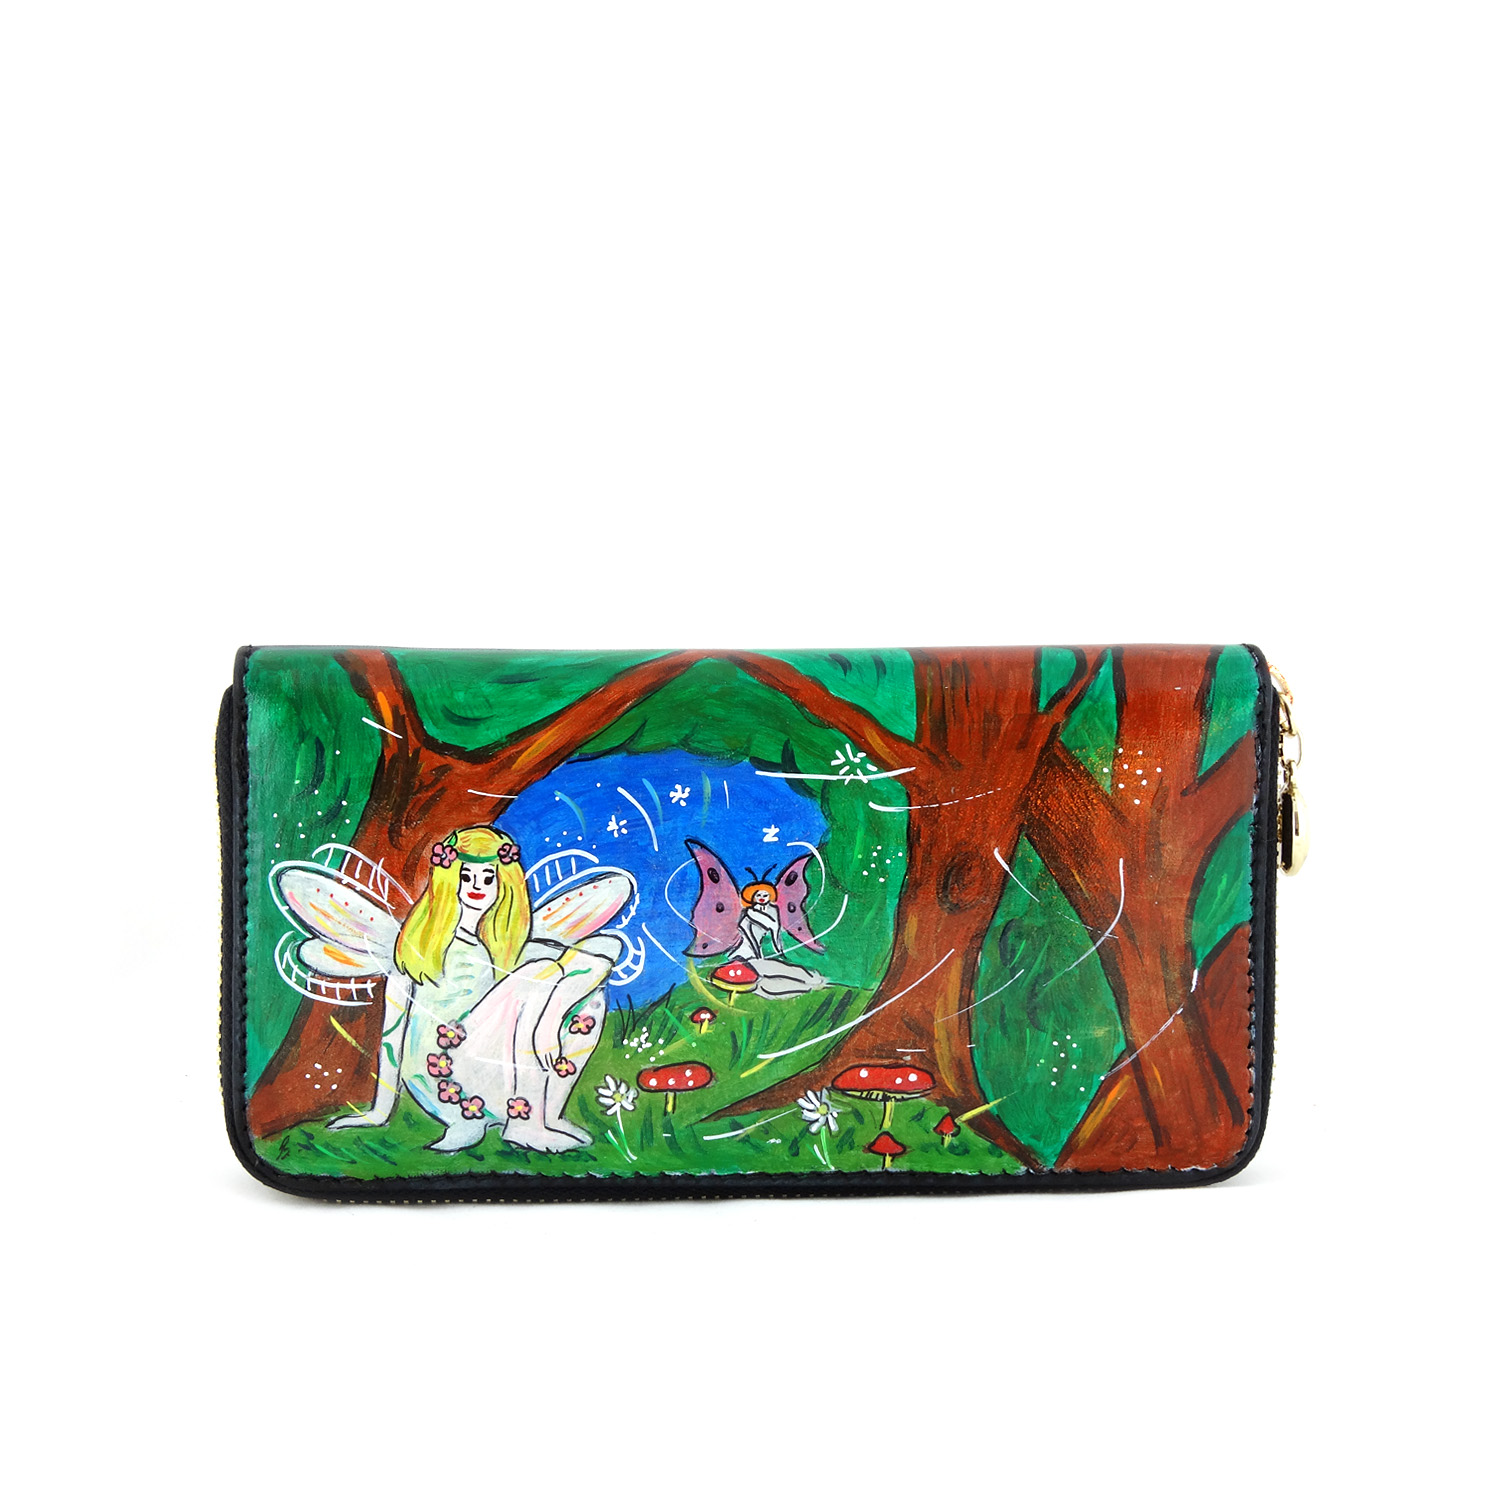 Hand painted wallet - The forest fairy